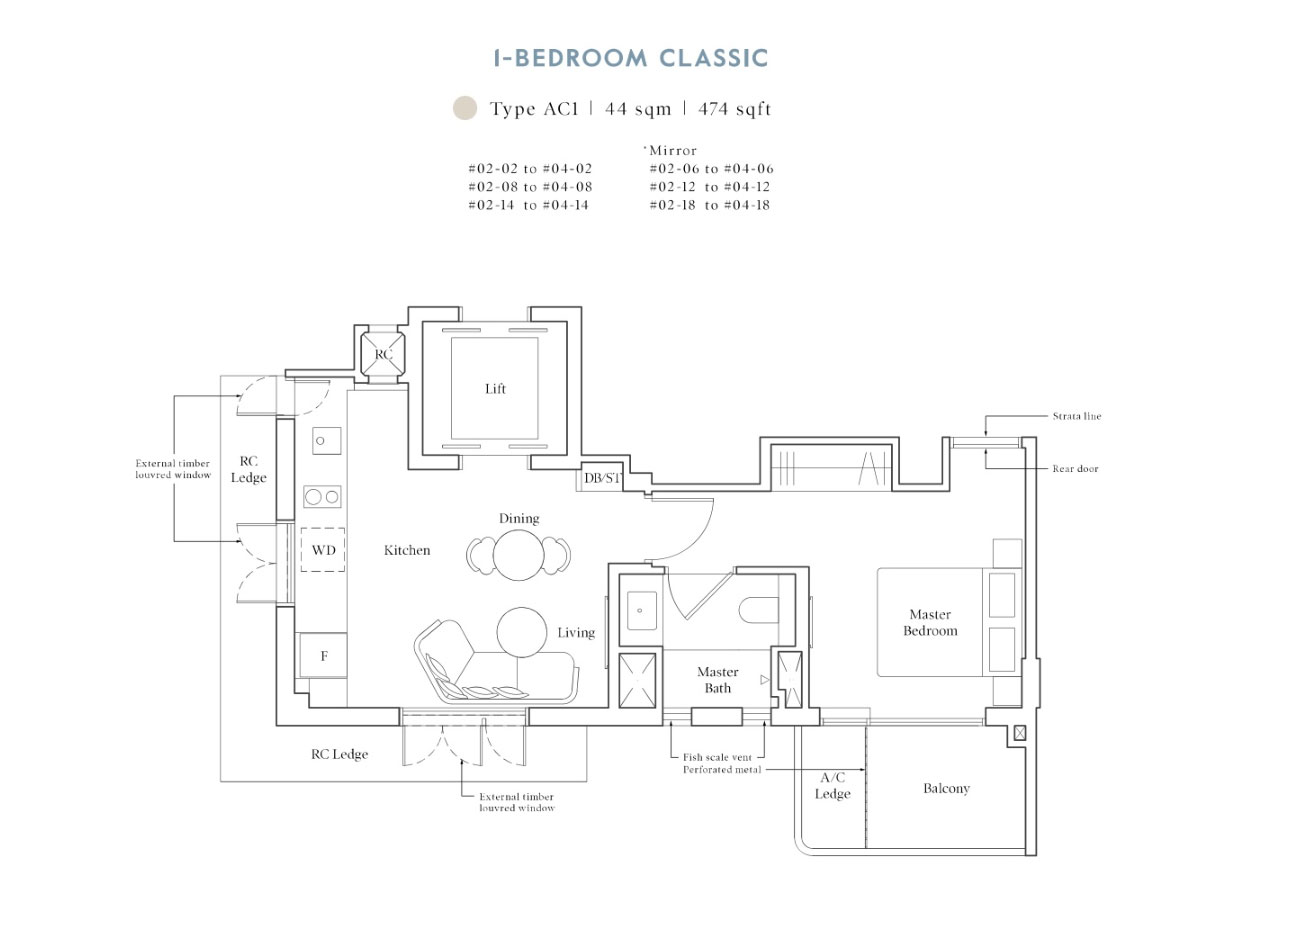 Heritage collection - 1 Bedroom Classic, AC1